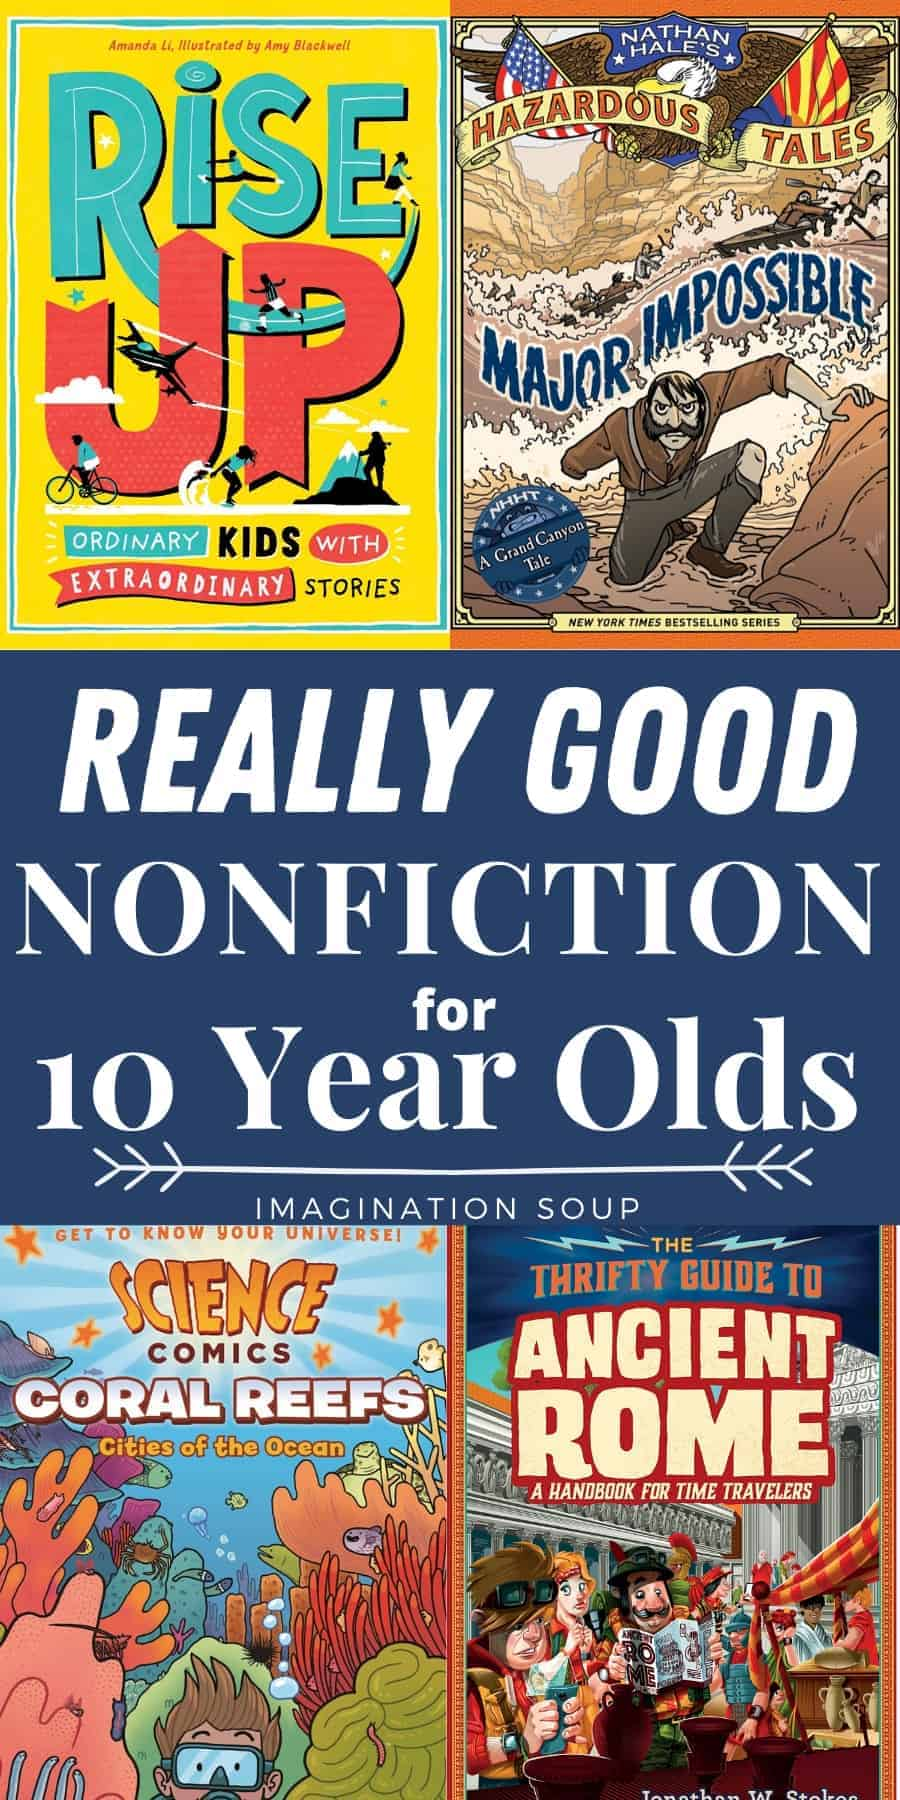 really good nonfiction for 10 year olds (5th grade)